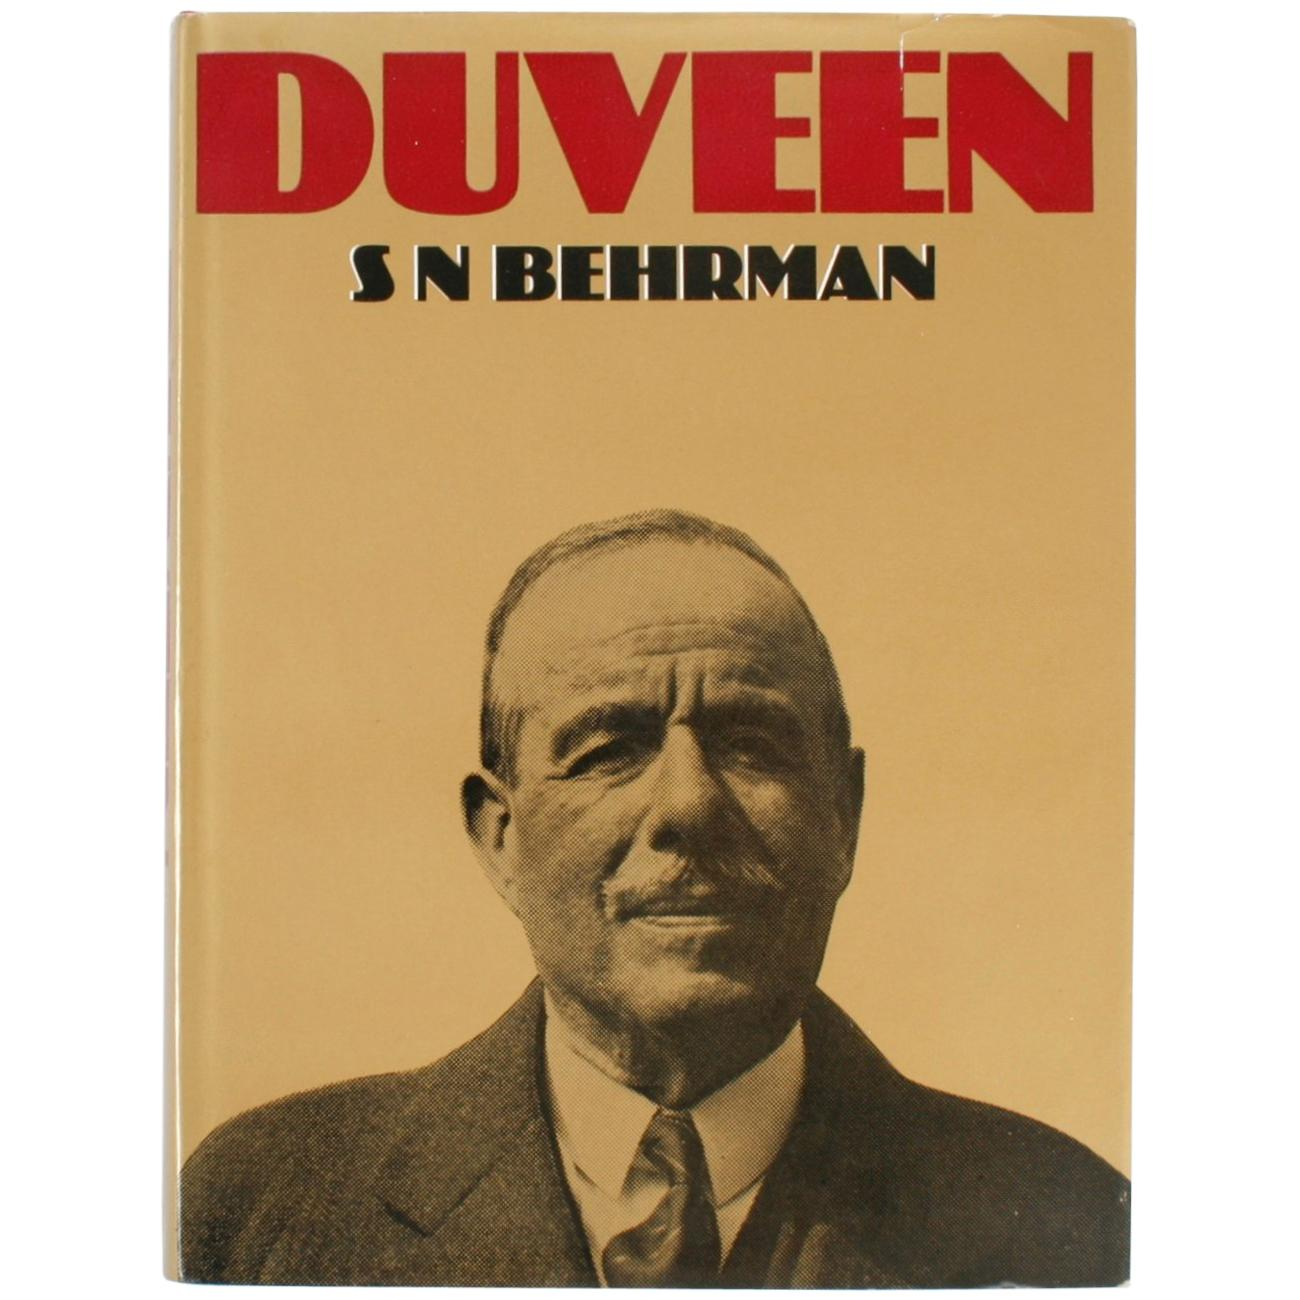 Duveen by S. N. Behrman, First Edition